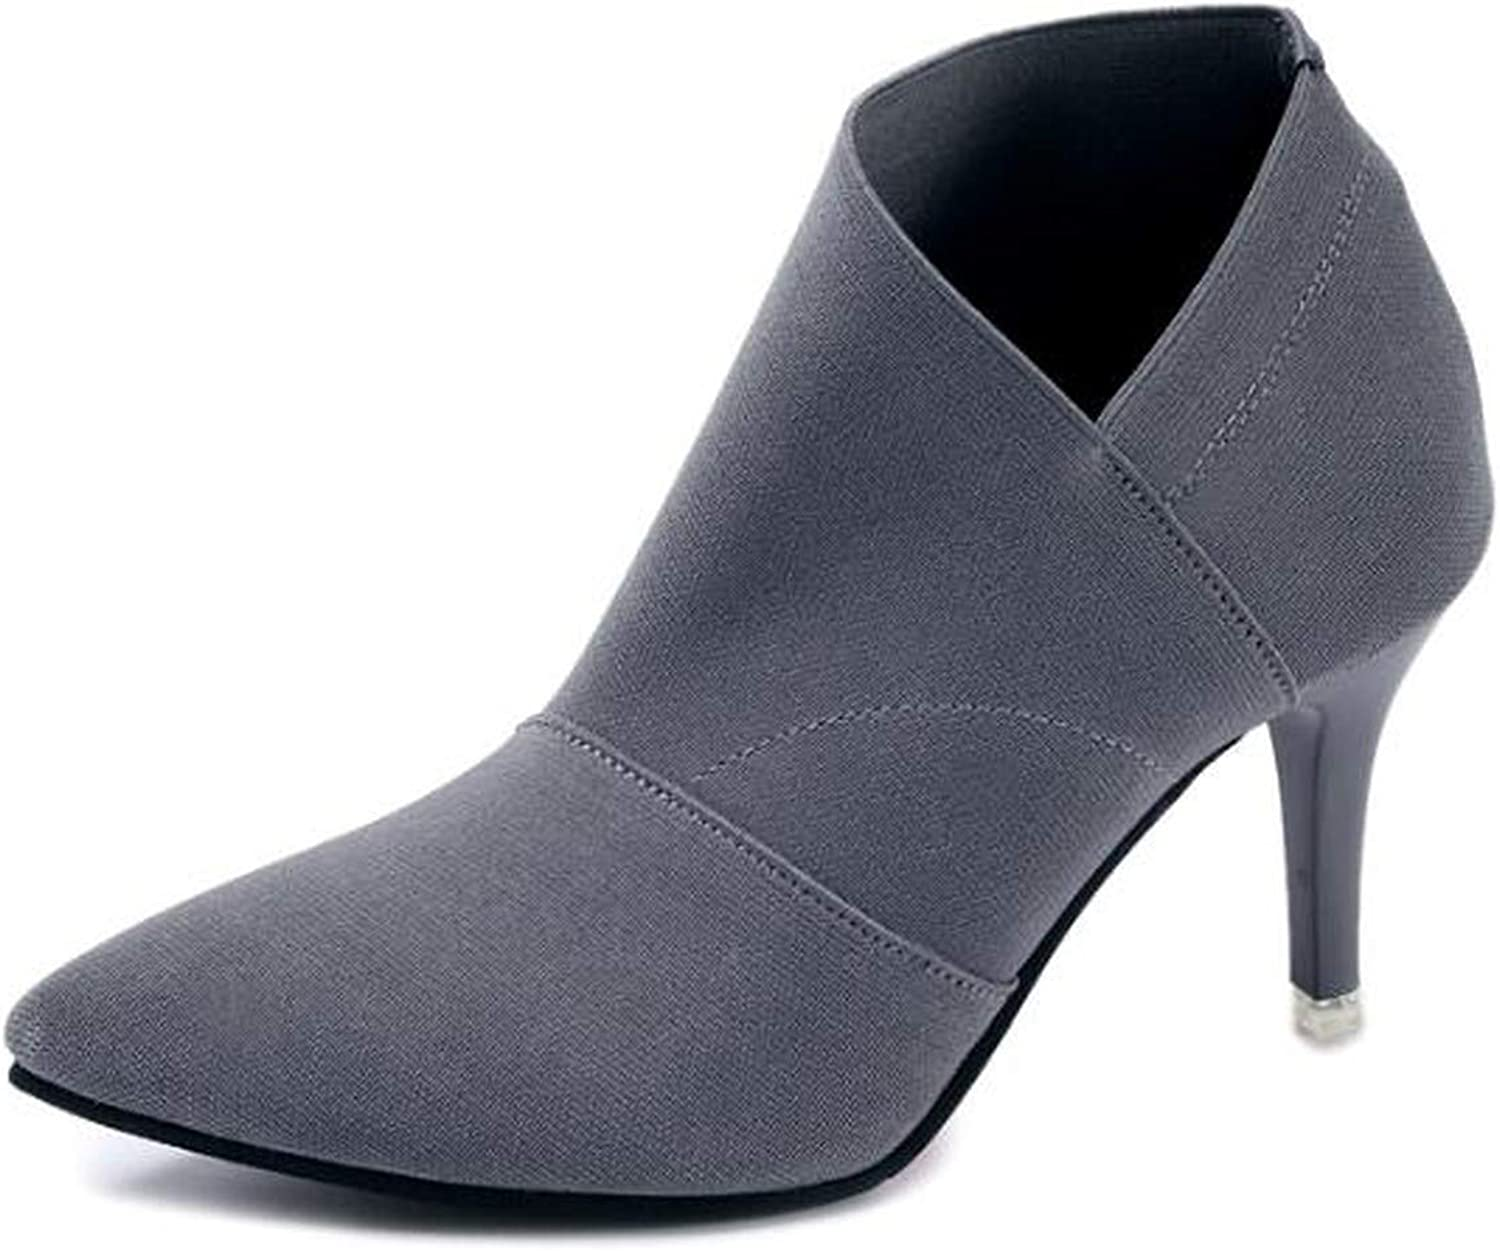 Pointed Toe High Heels Basic shoes Autumn Winter Casual Fitted Outwear shoes